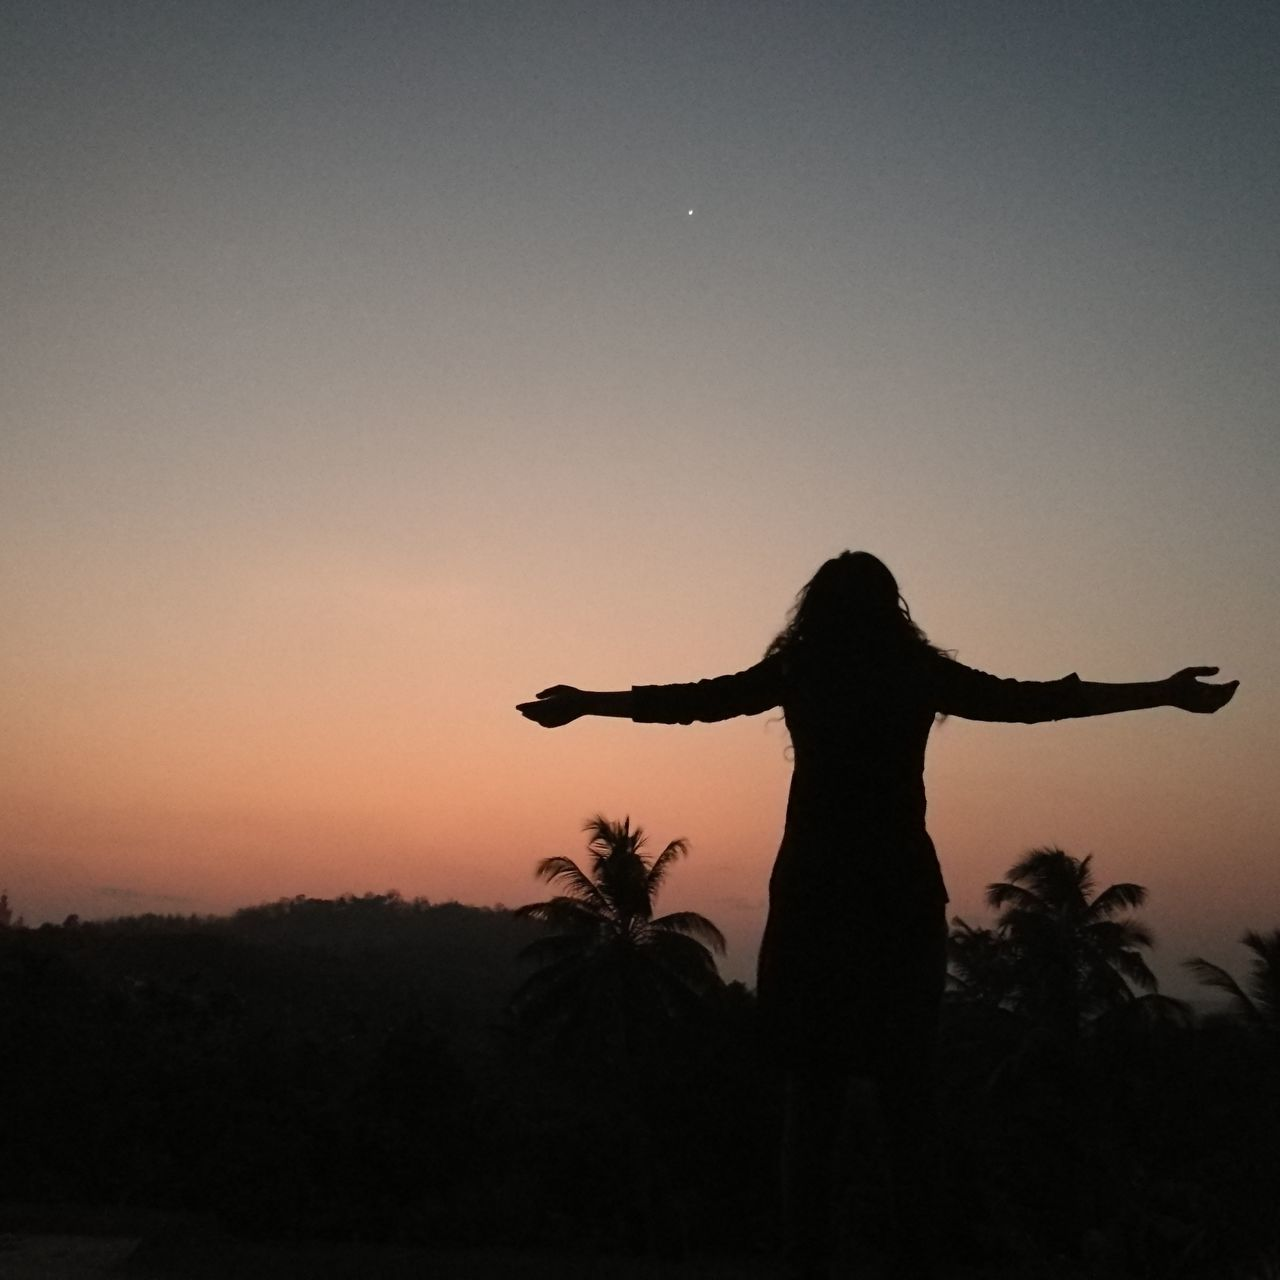 Follow Your Dreams Silhouette Sunset One Person Sky People Outdoors The City Light Still Life Eyemmarket Tranquil Scene Kerala